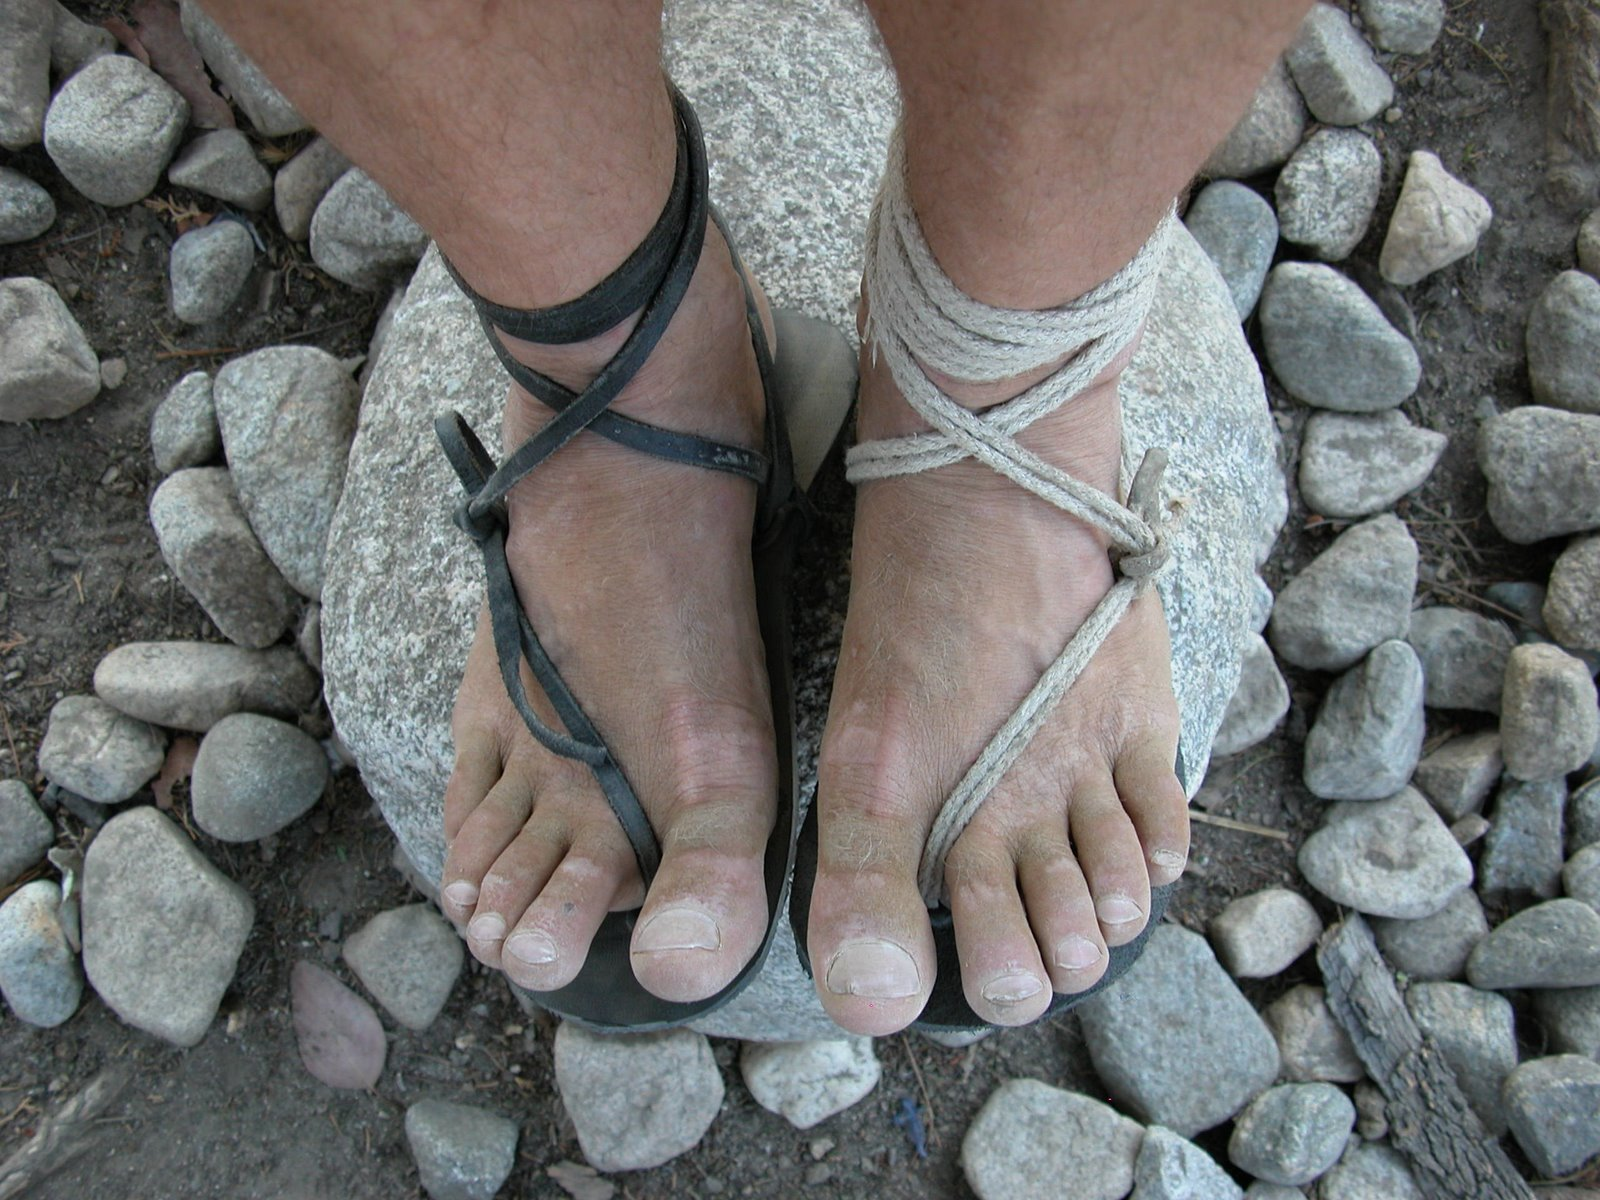 barefoot ted's feet